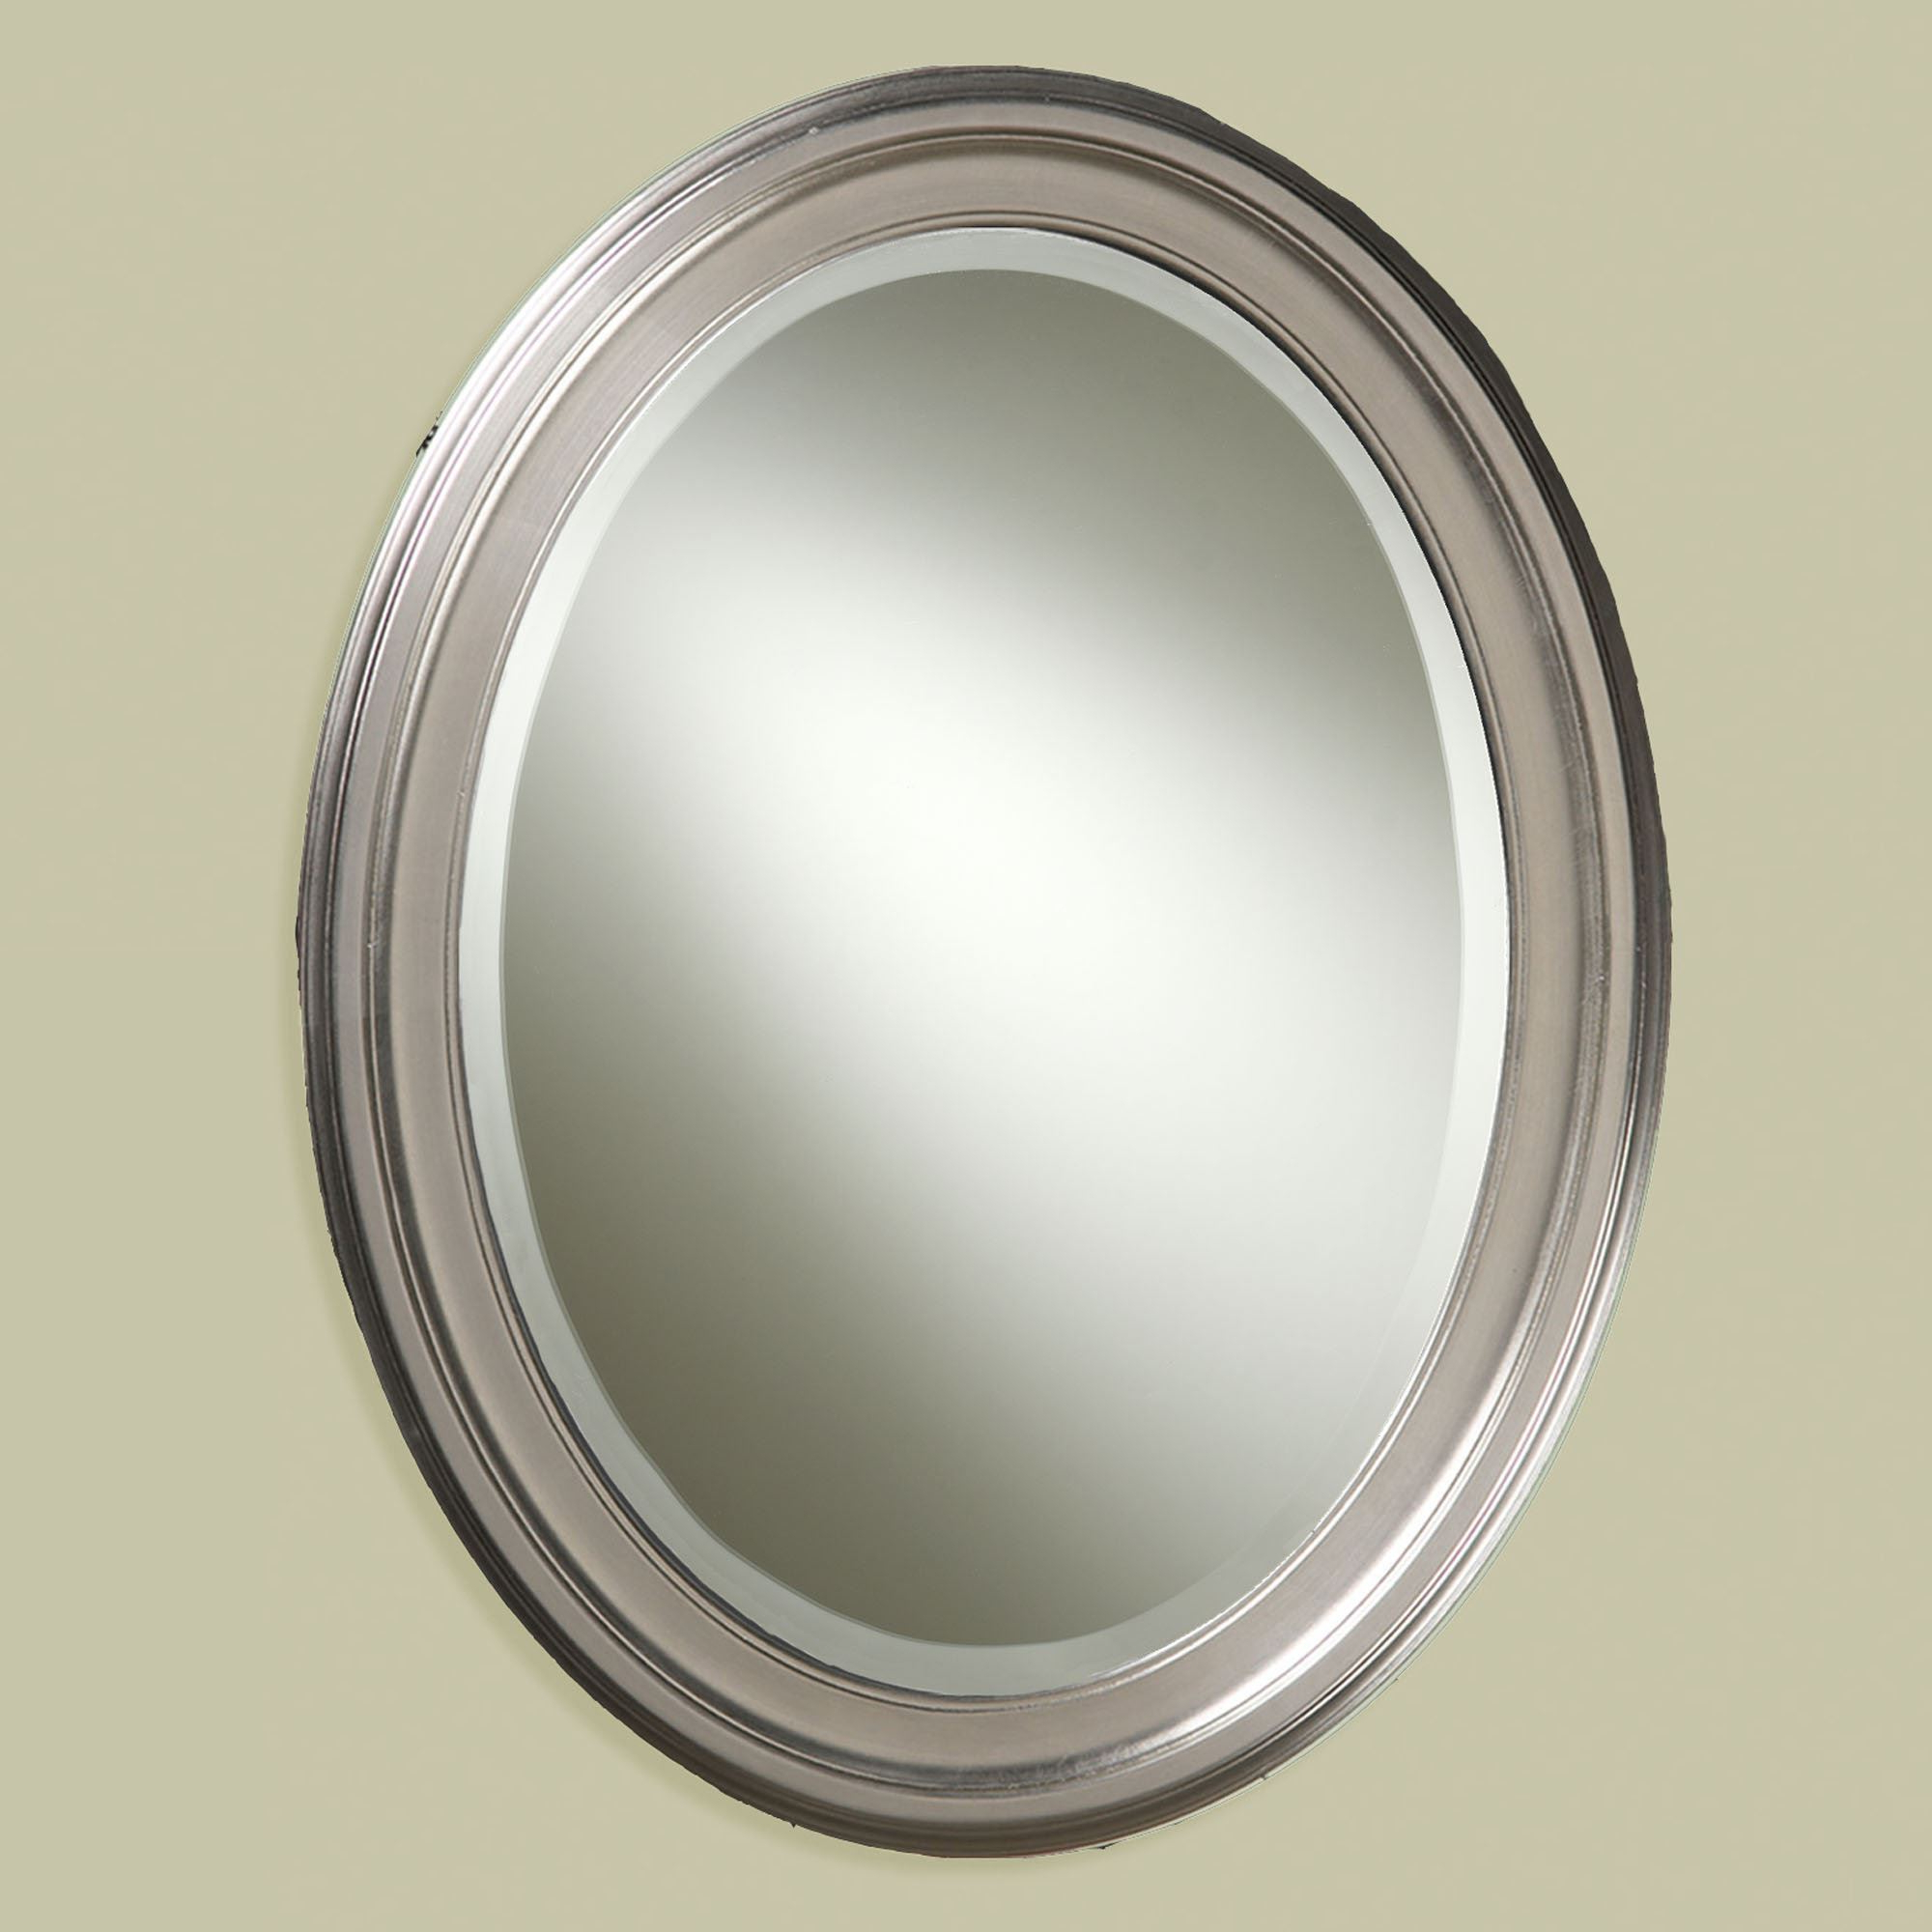 Well Known Brushed Nickel Wall Mirrors For Bathroom Inside Loree Brushed Nickel Finish Oval Wall Mirror (View 5 of 20)